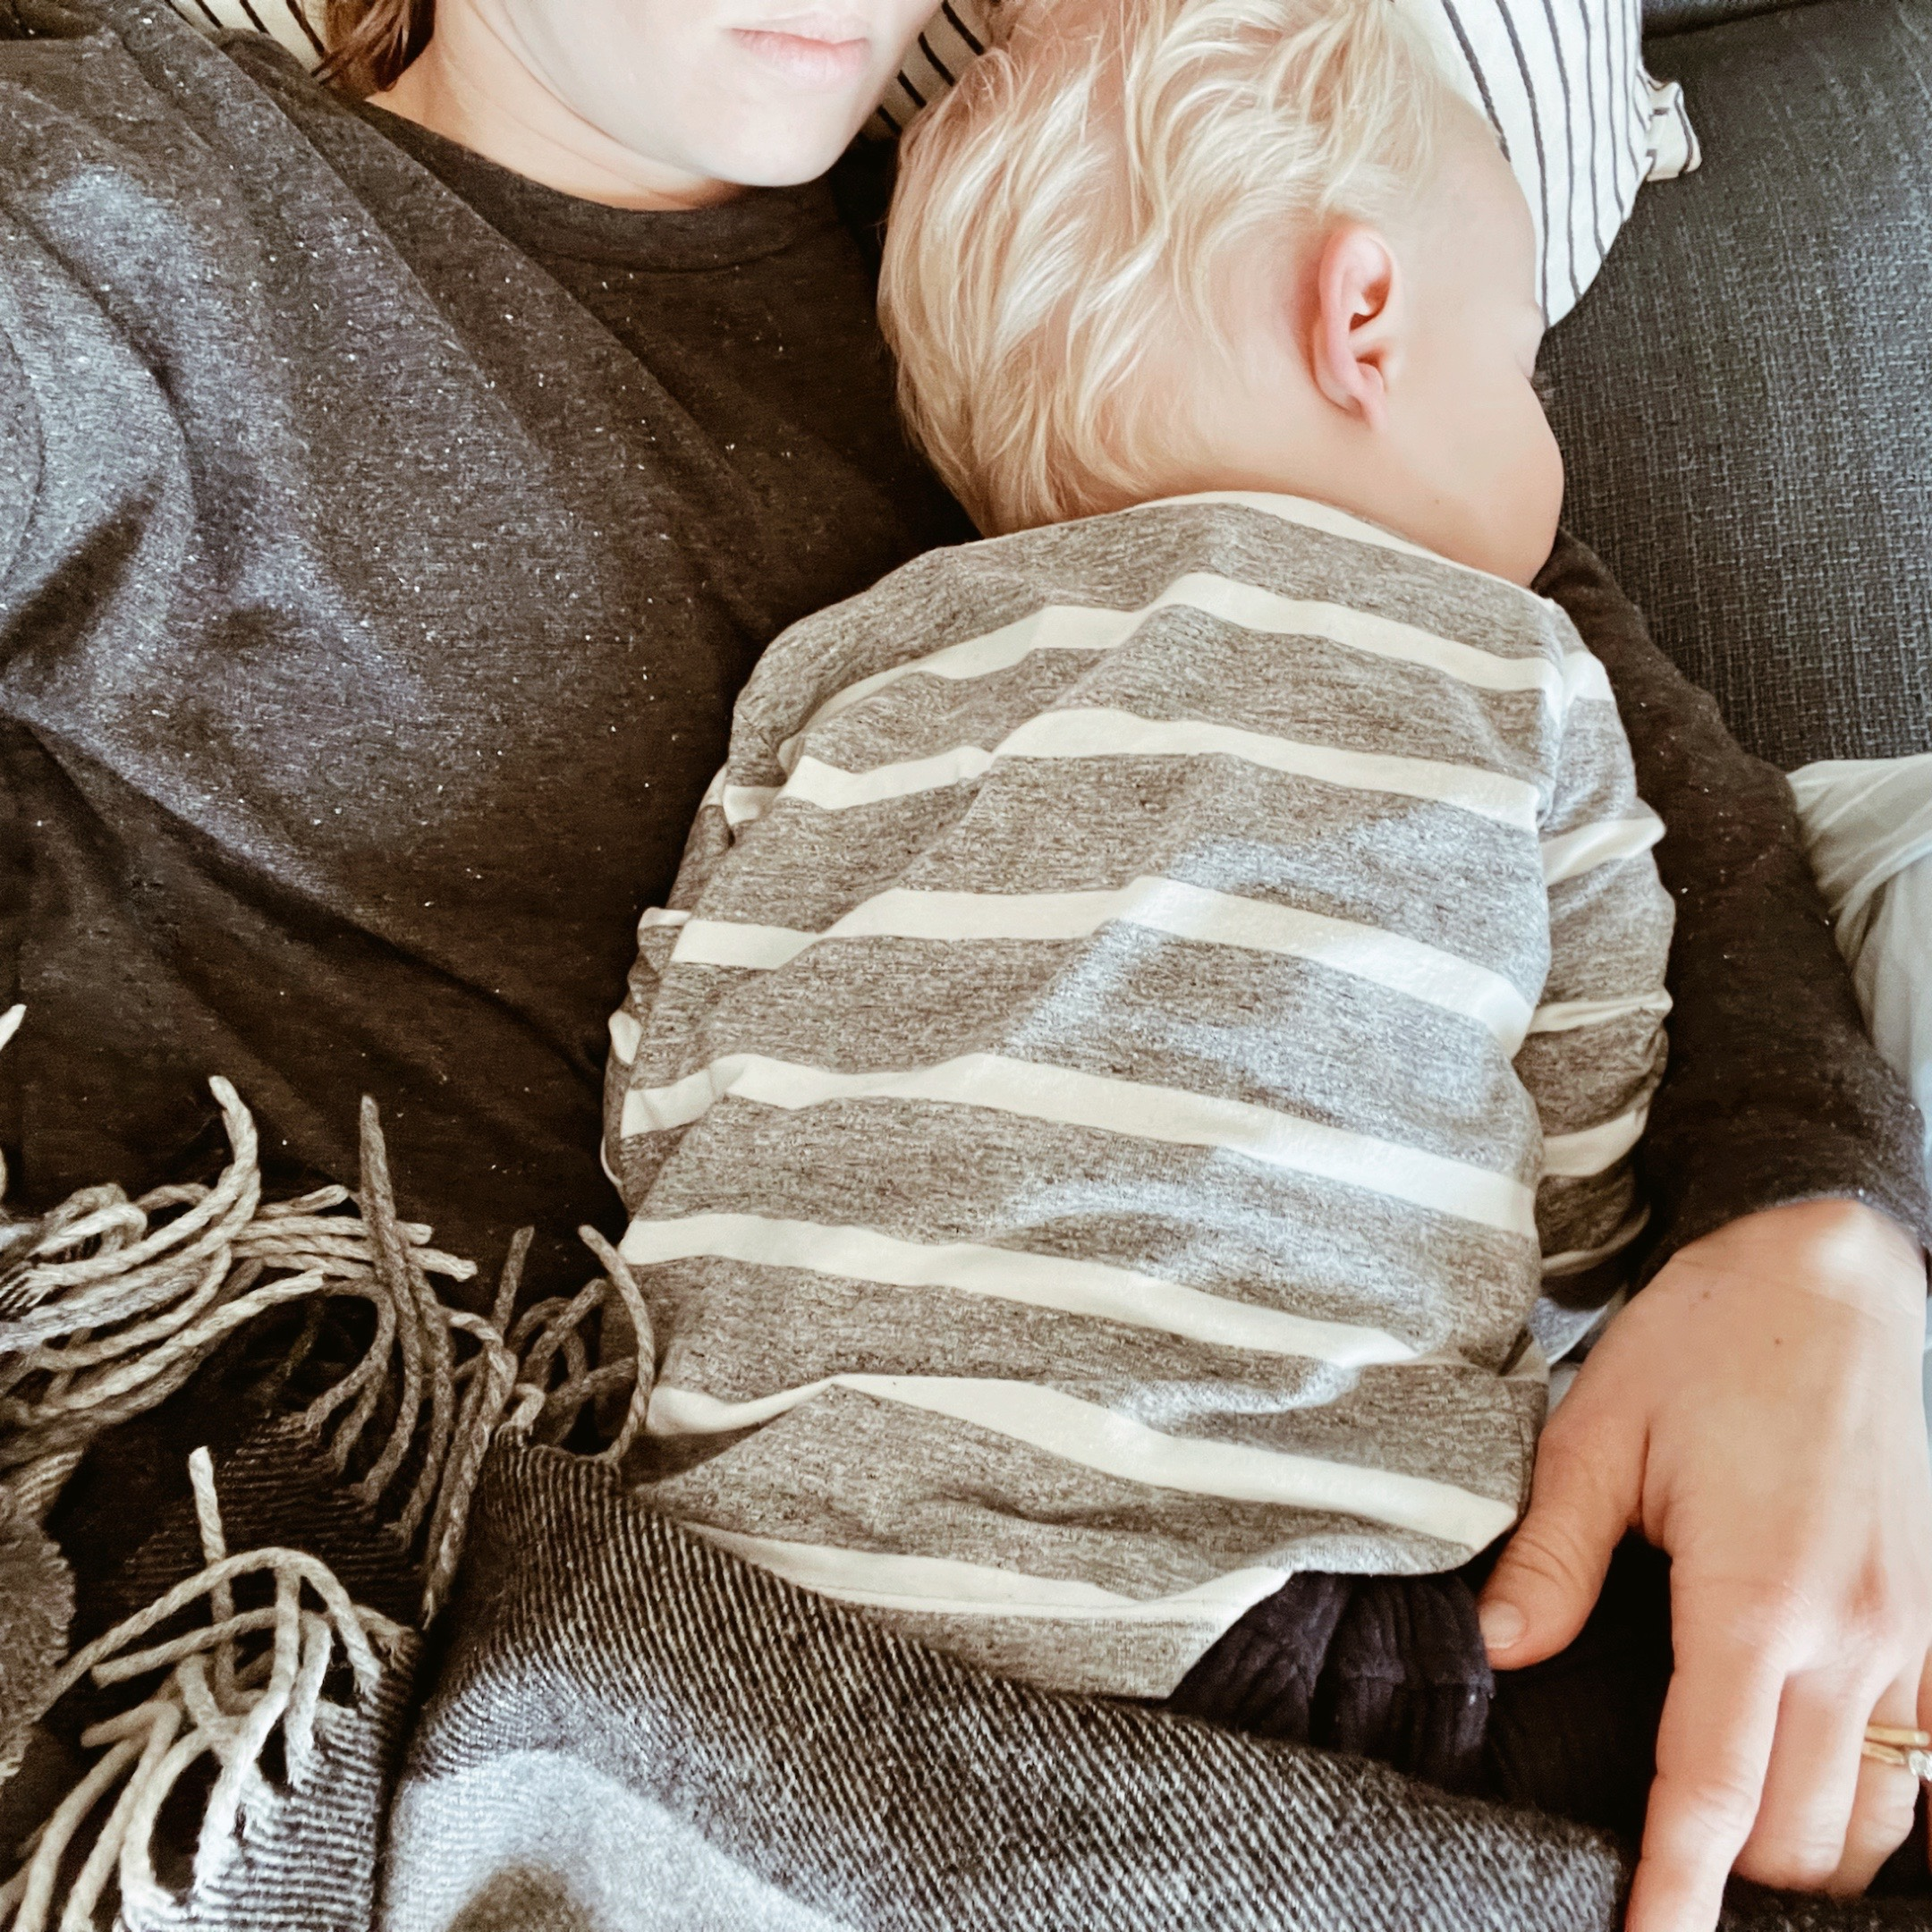 Sleeping toddler boy snuggled up to his mother on a lounge.